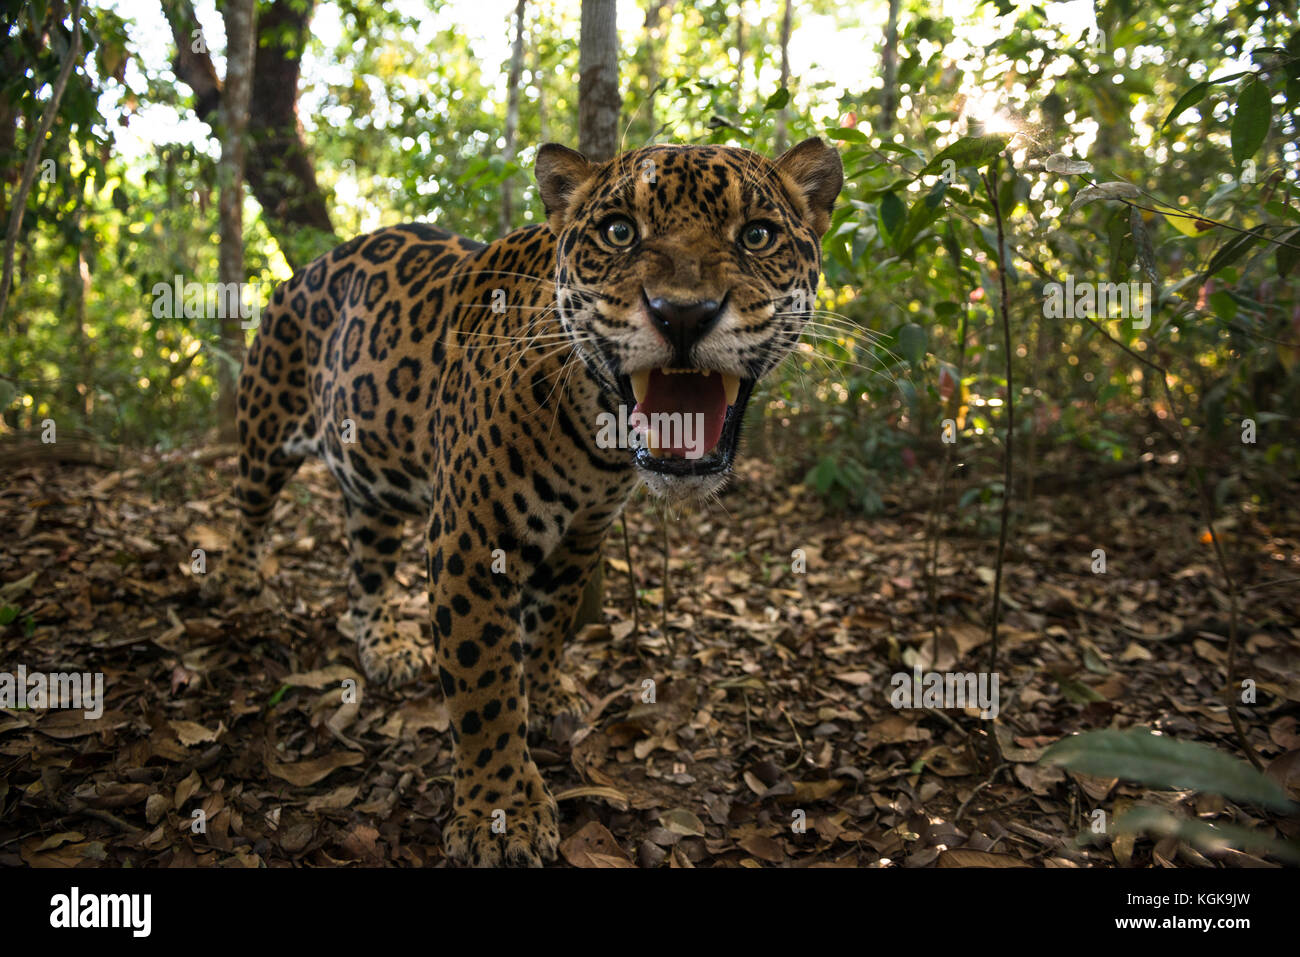 A Jaguar inside a forest in central Brazil - Stock Image